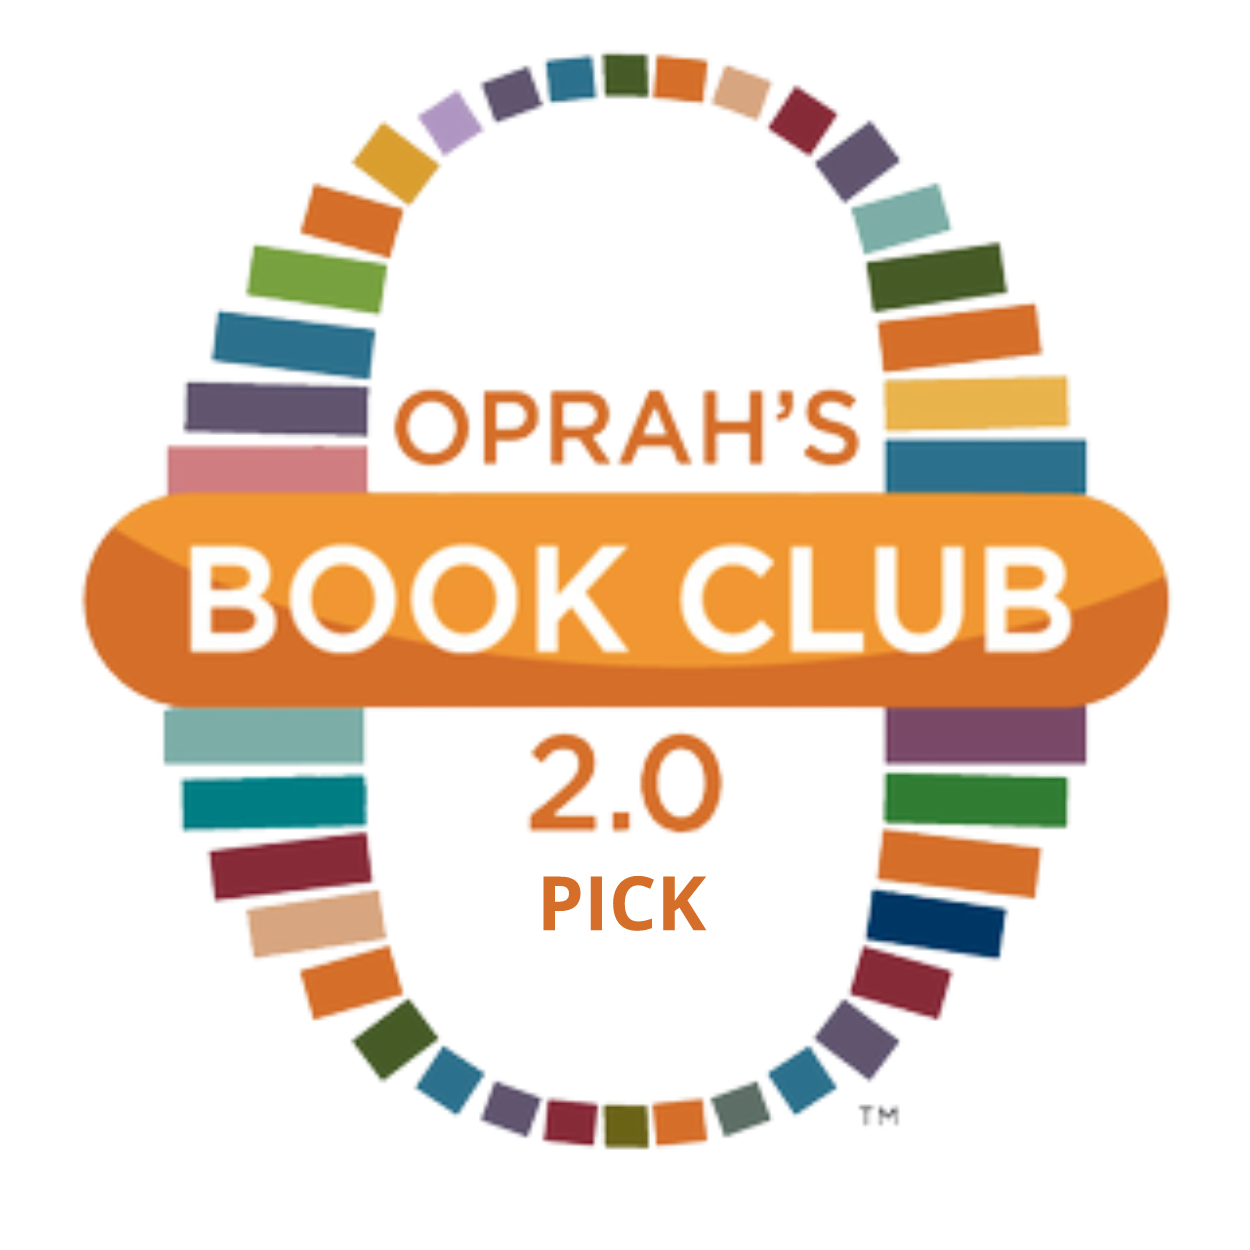 Oprah's_Book_Club_2.0.png